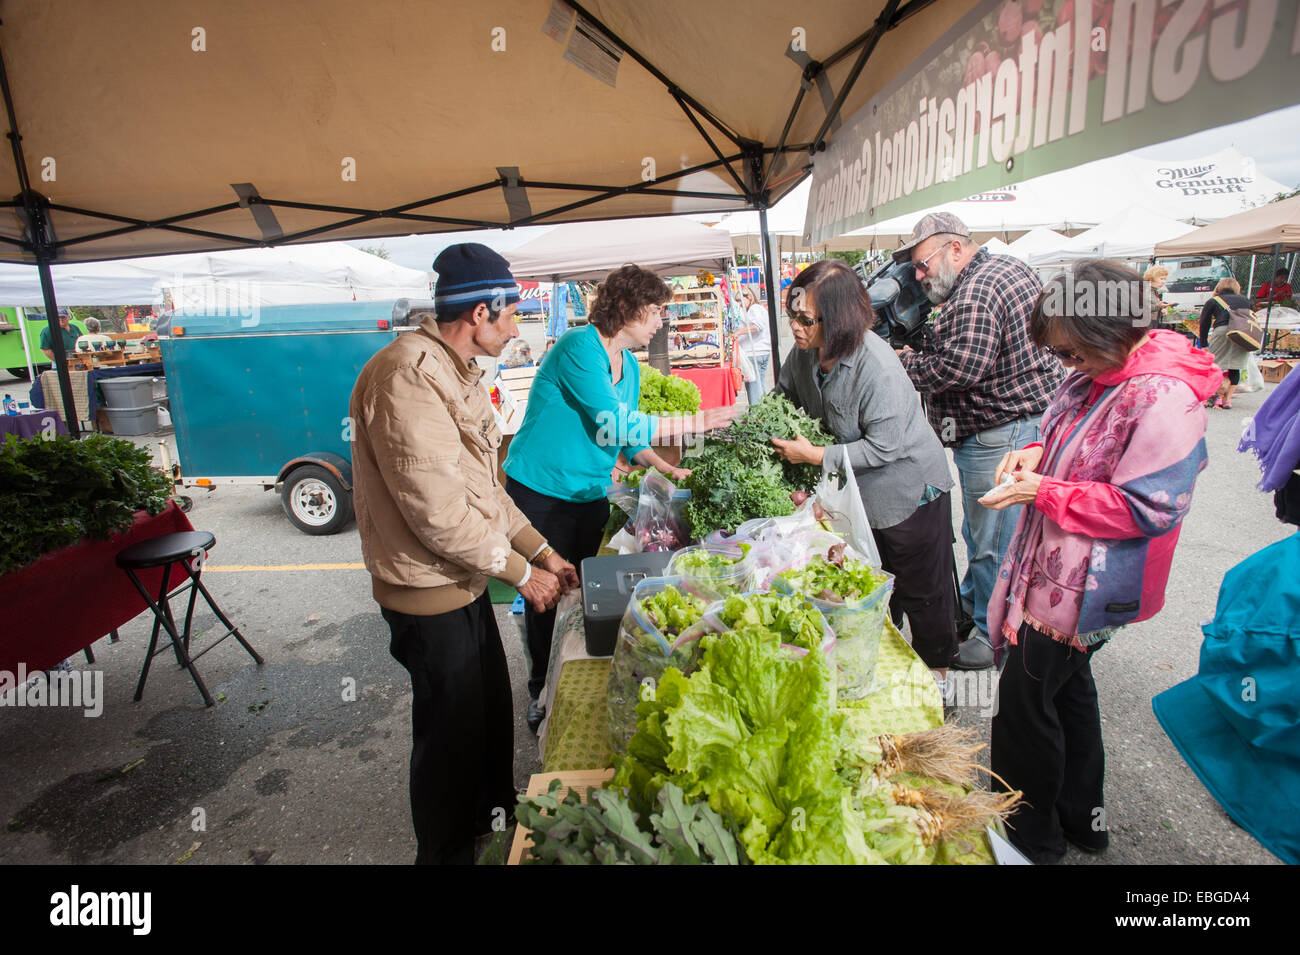 Fresh vegetable booth at a farmers market - Stock Image